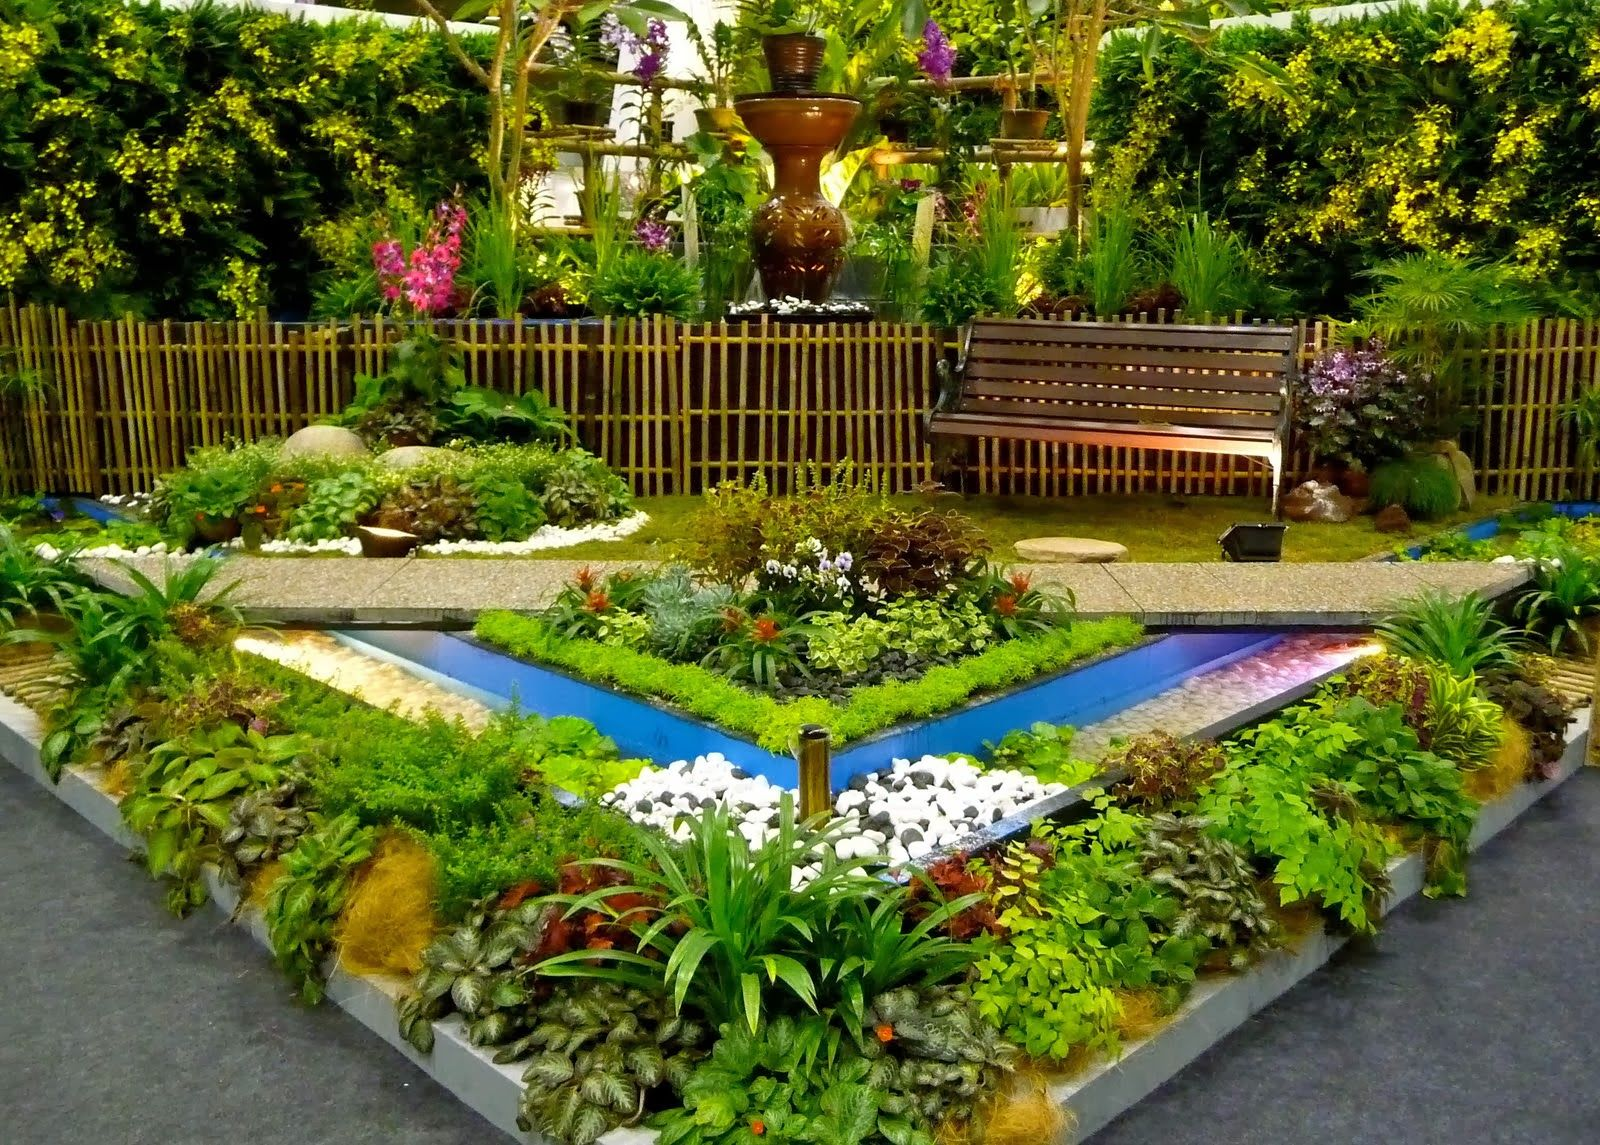 Best landscaping ideas i have ever seen wow design for Best home lawn designs